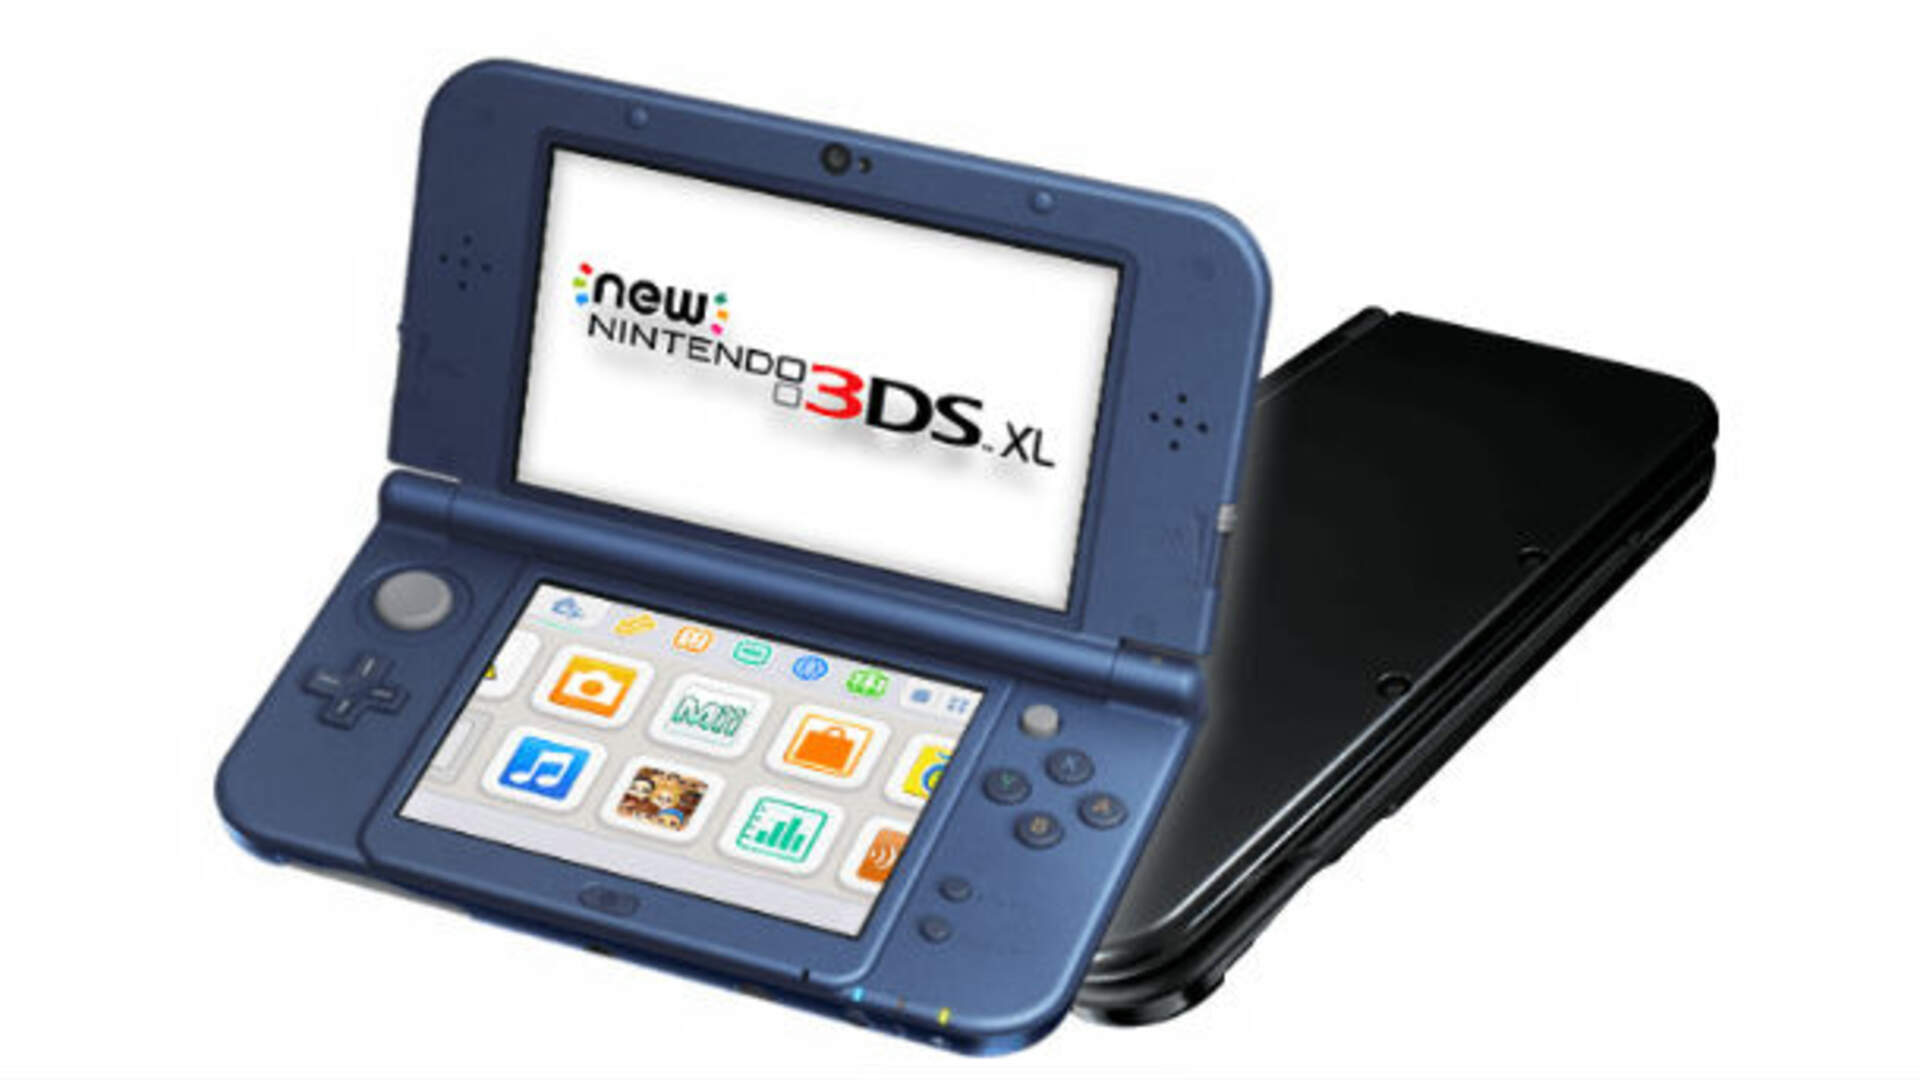 There's a Reason the Nintendo 3DS is Sticking Around